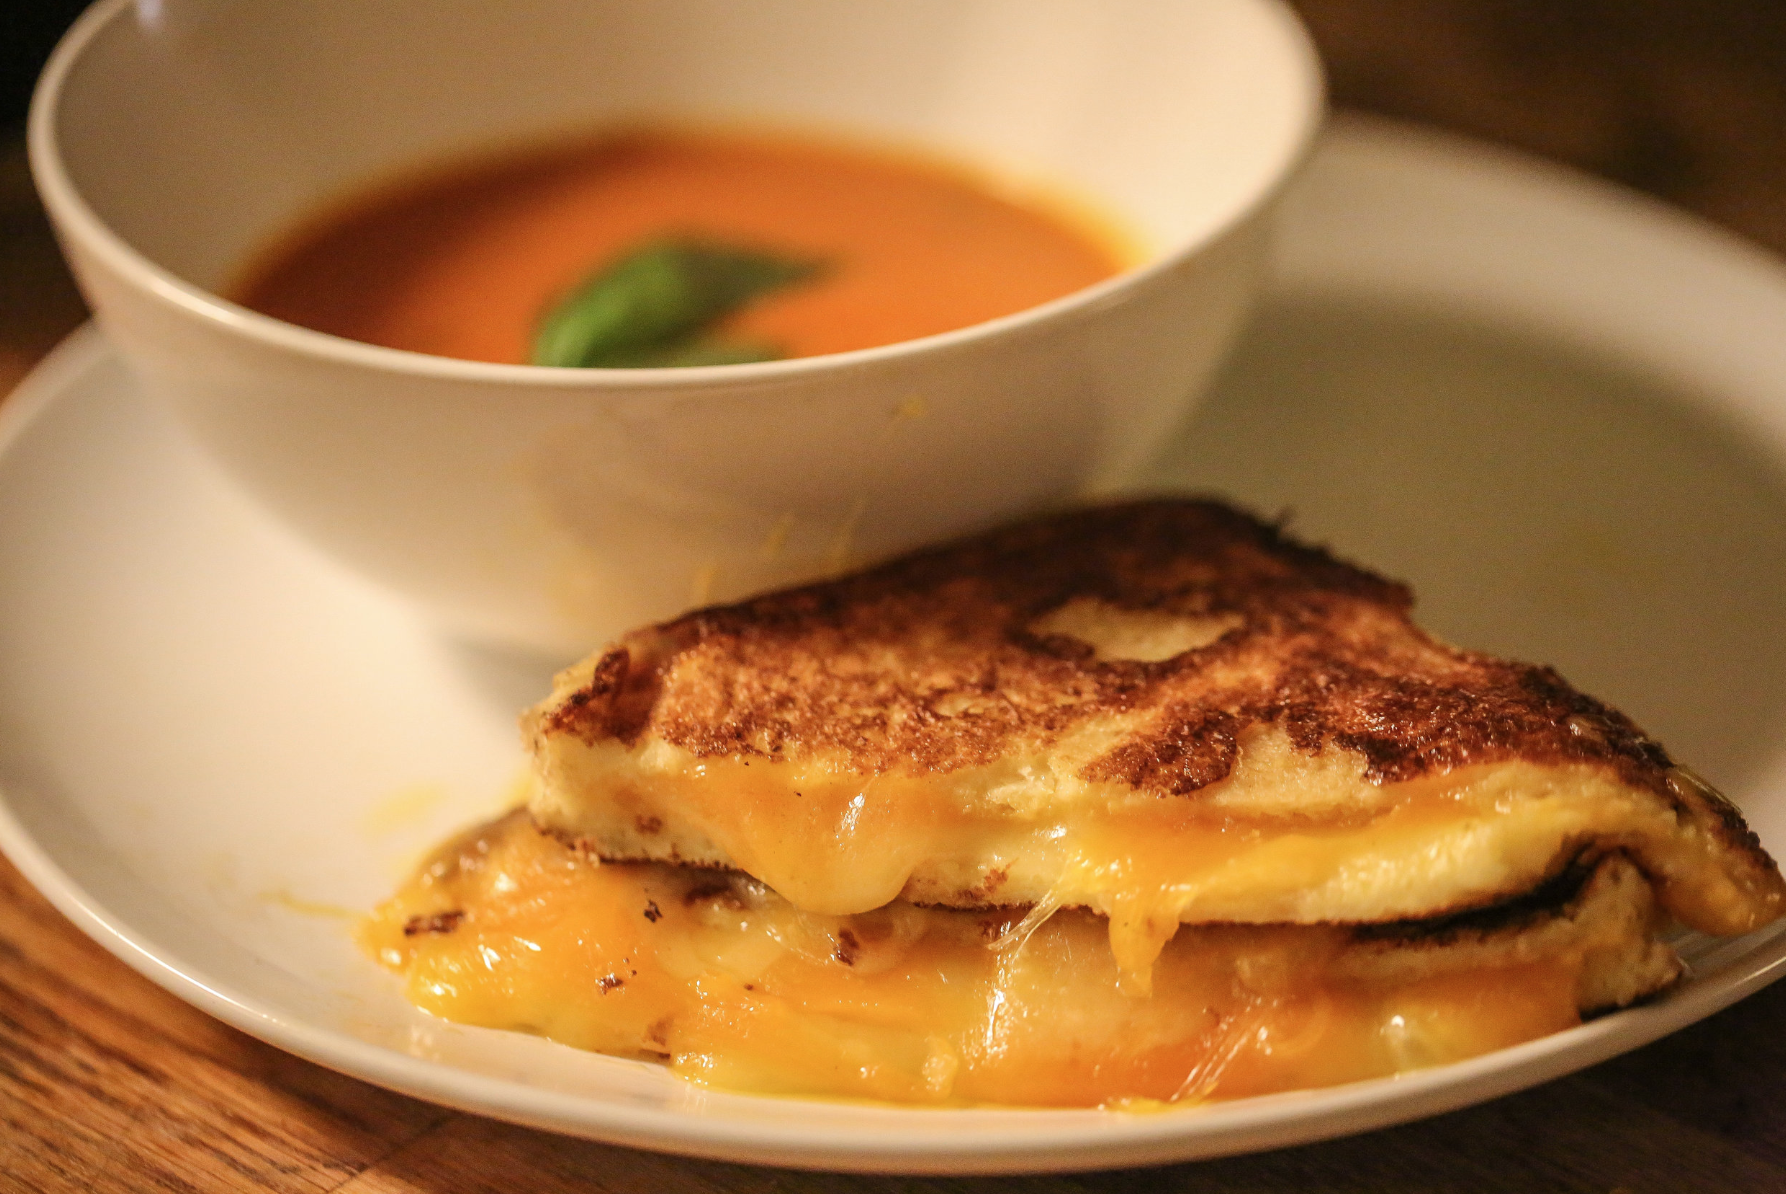 dressed up grilled cheese and tomato soup